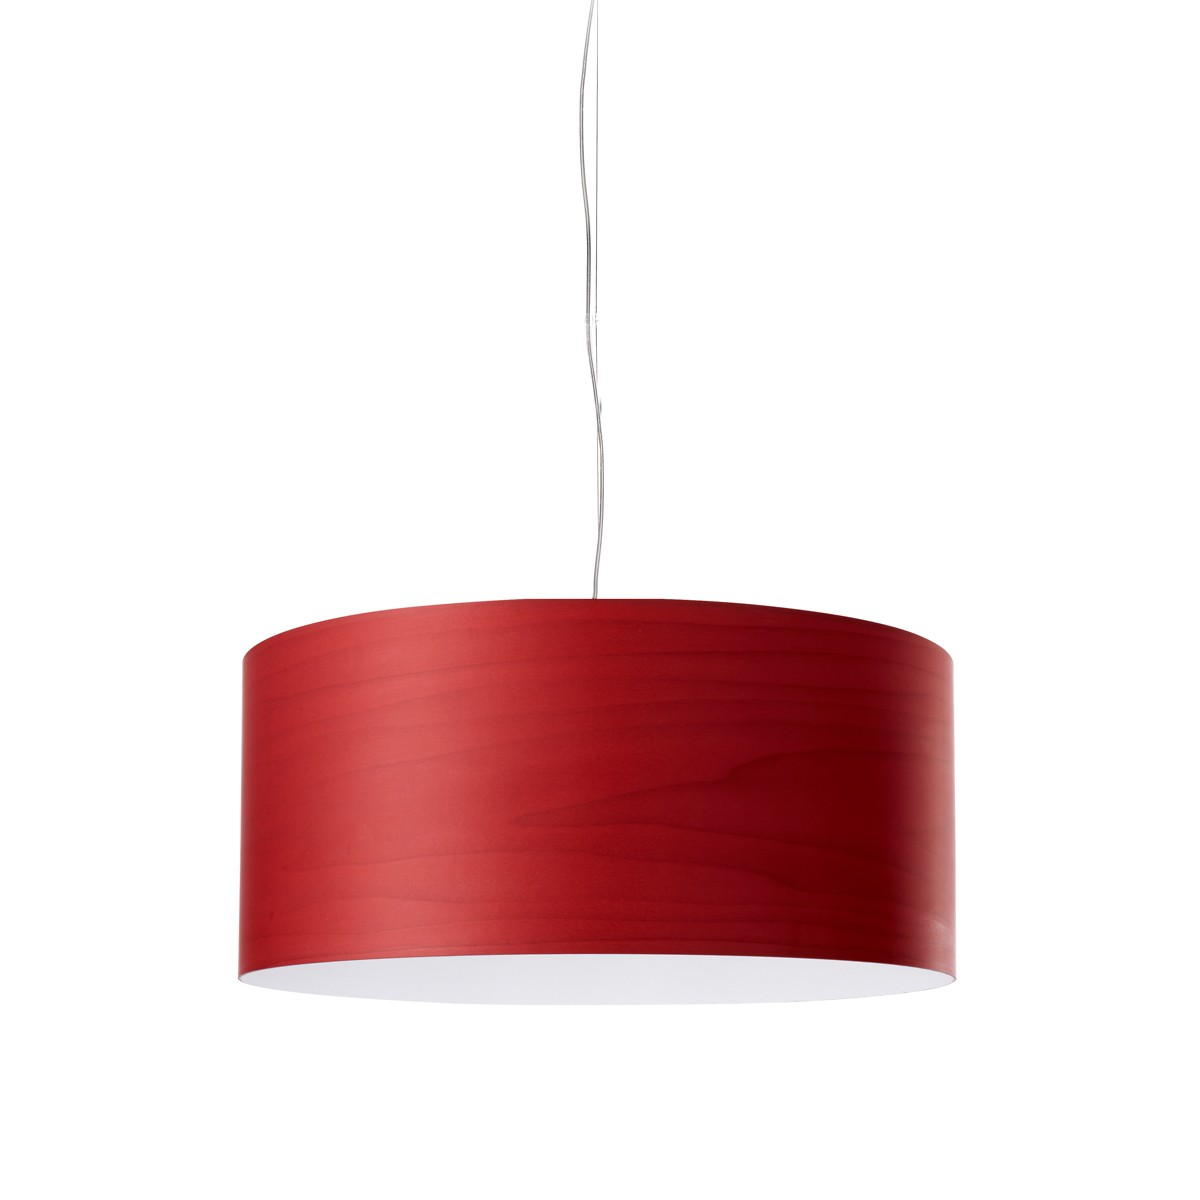 LZF Lamps Gea Small Pendelleuchte, rot